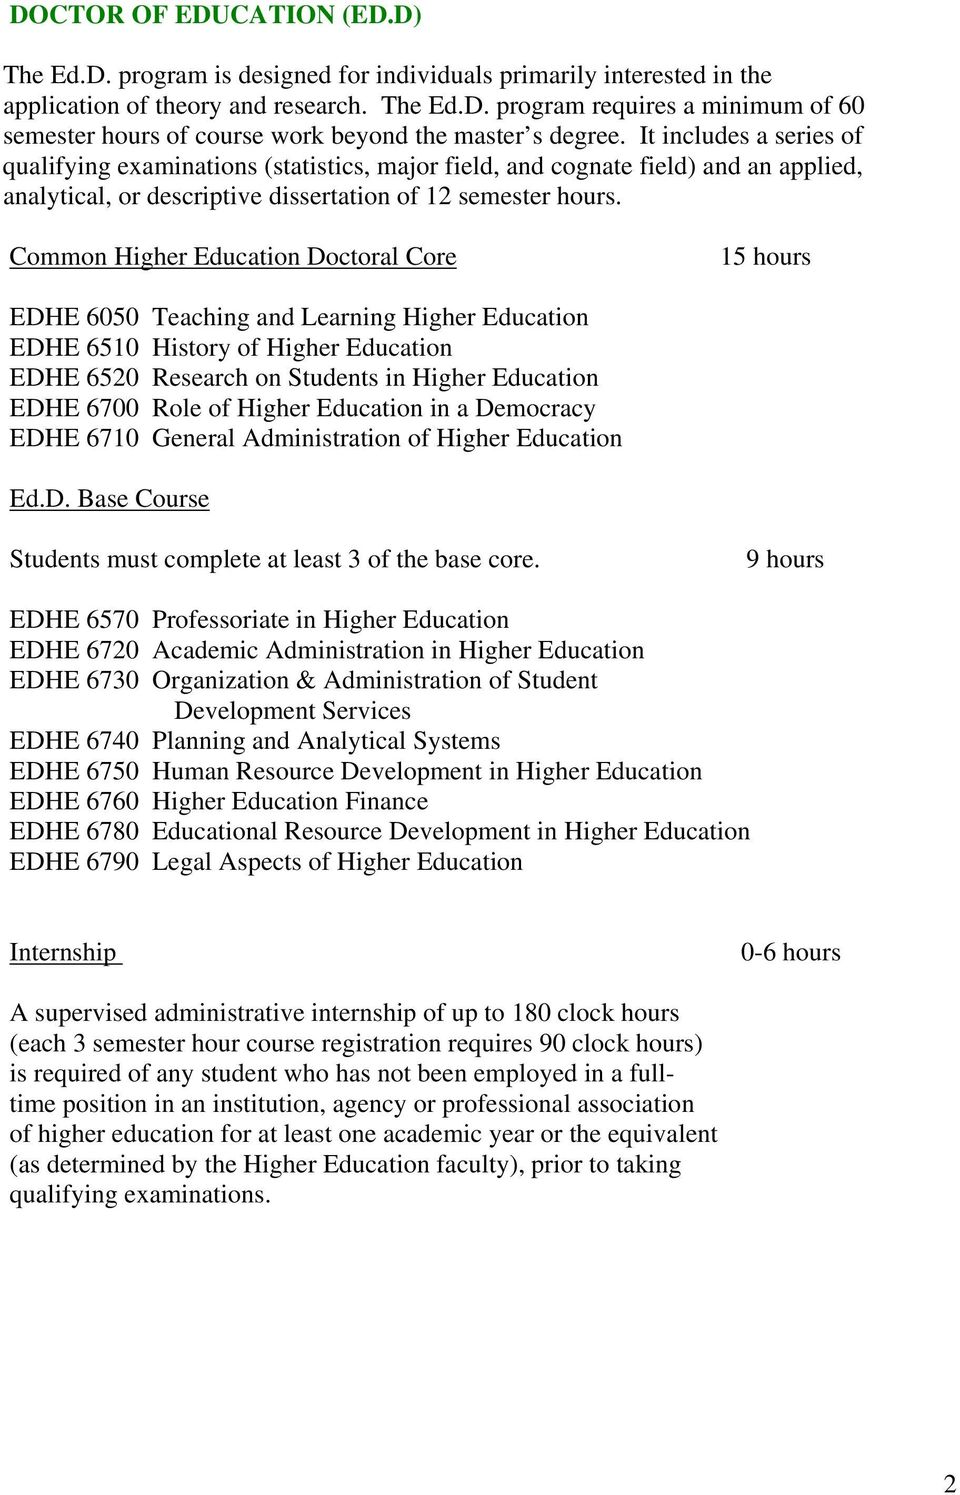 Common Higher Education Doctoral Core 15 hours EDHE 6050 Teaching and Learning Higher Education EDHE 6510 History of Higher Education EDHE 6520 Research on Students in Higher Education EDHE 6700 Role